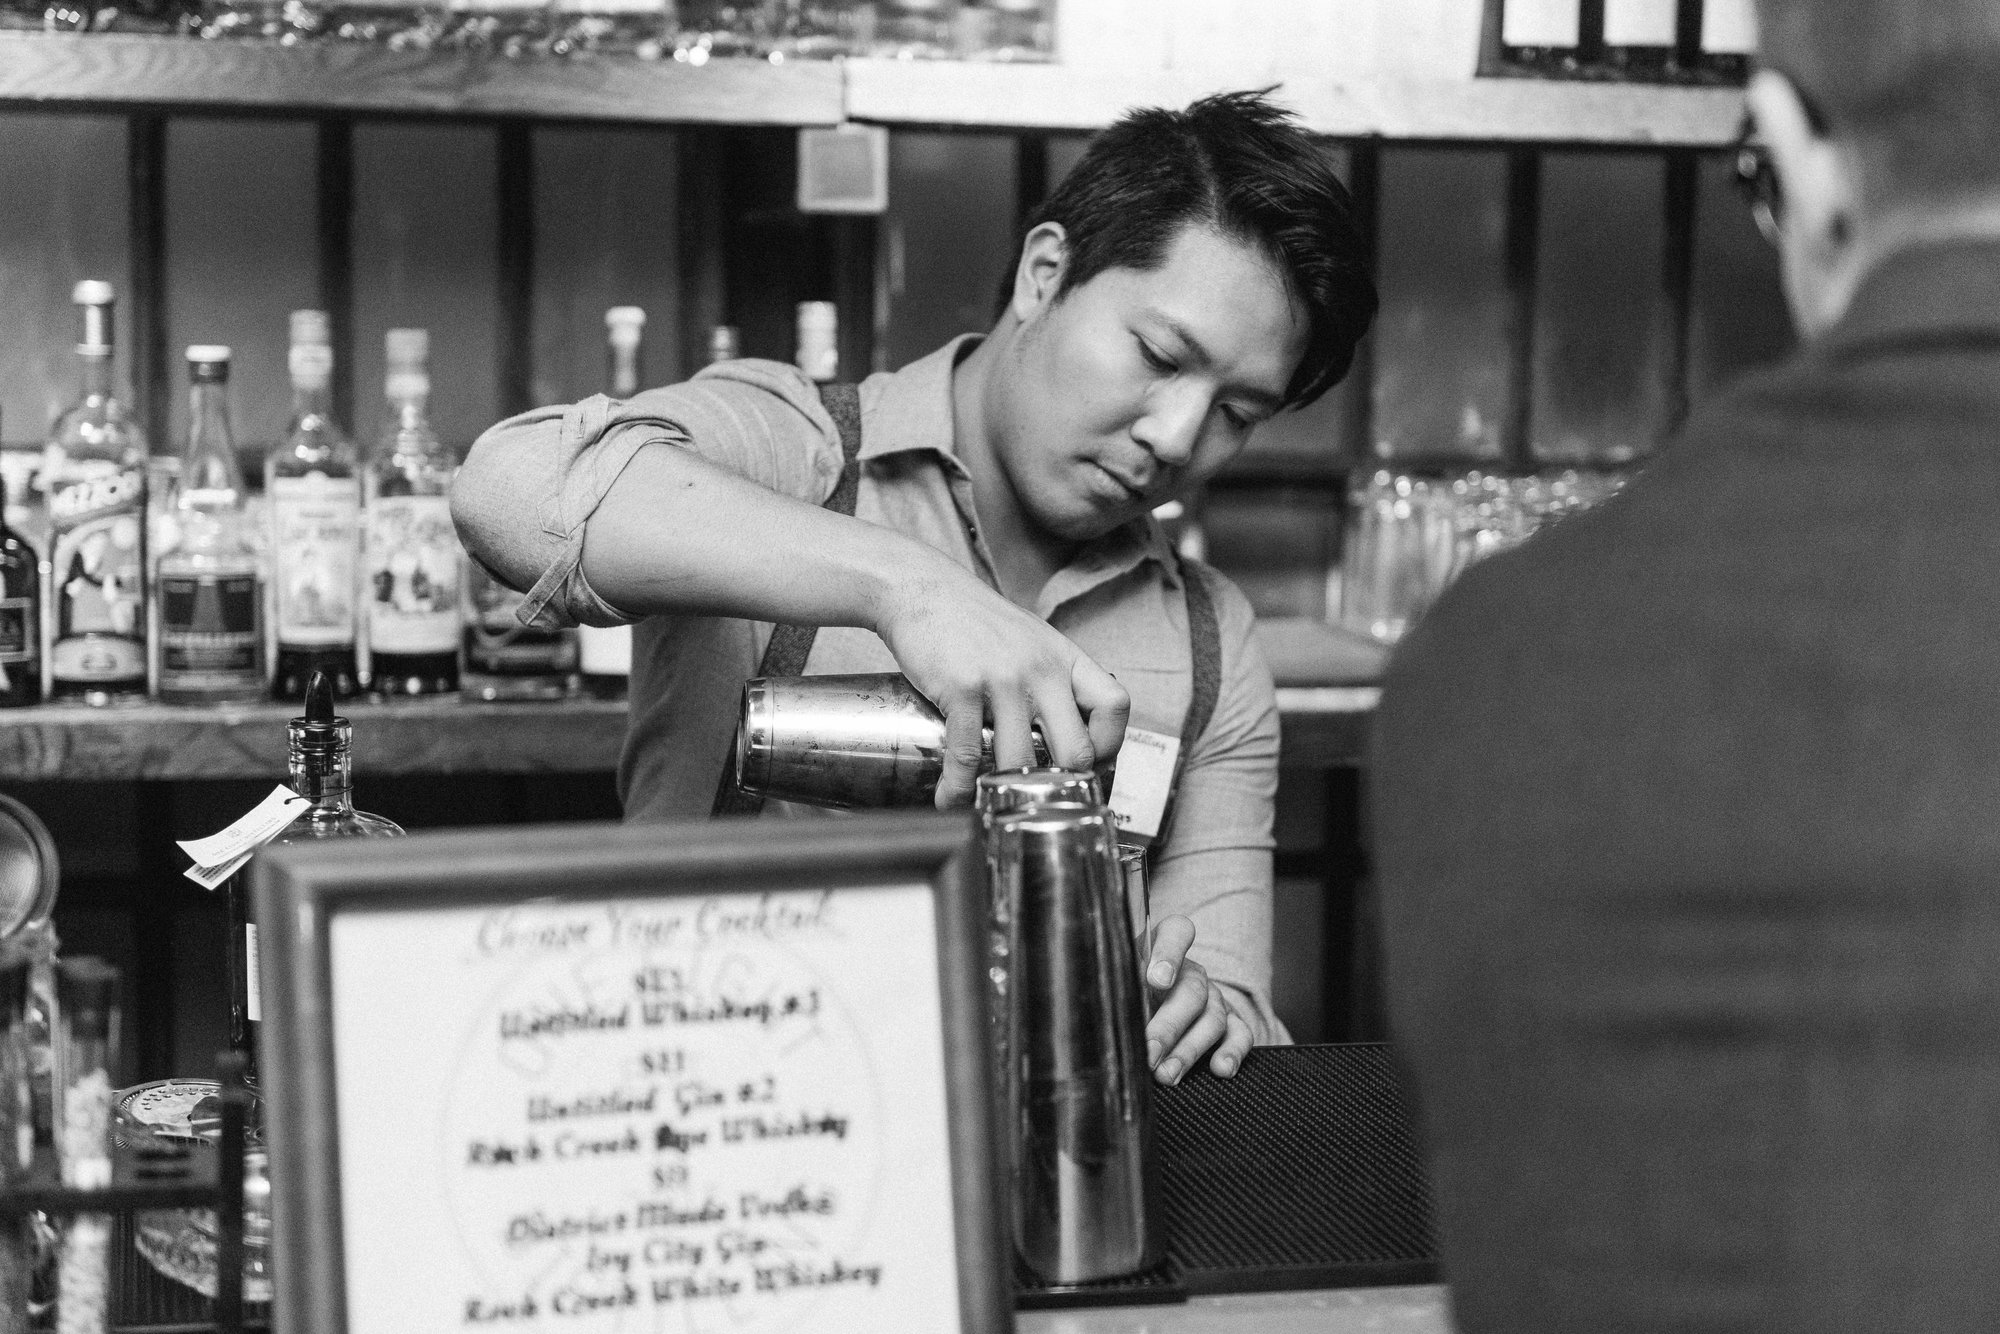 Bartender at One Eight Distilling in Ivy City, Washington, DC